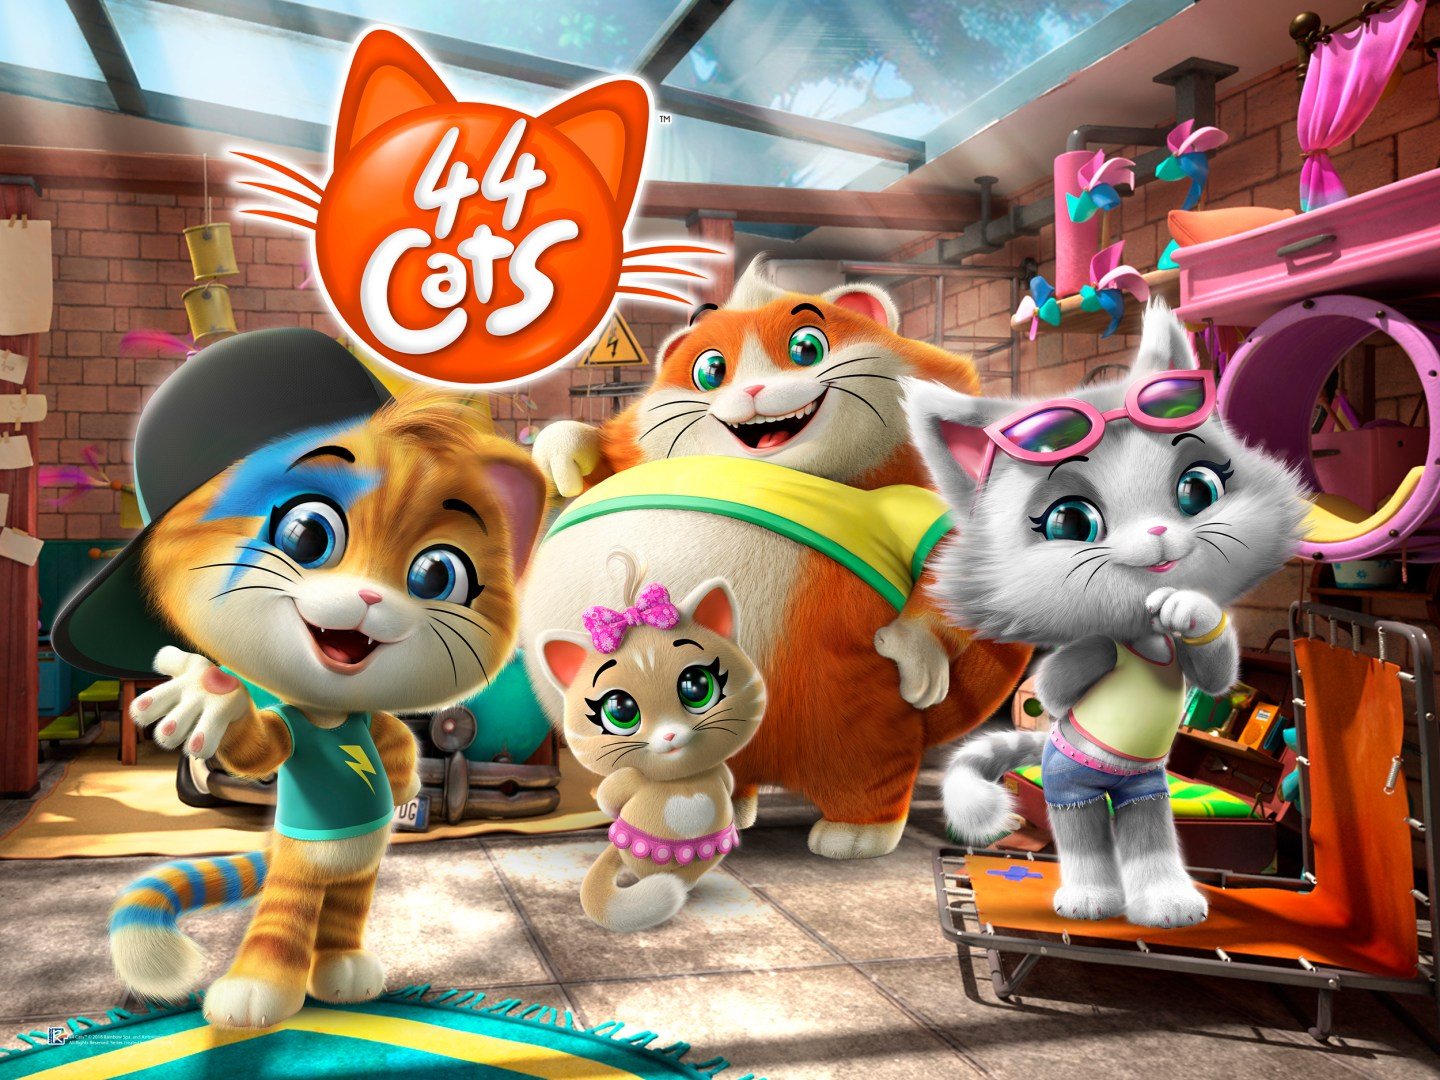 44 Cats – A New TV Show for Kids